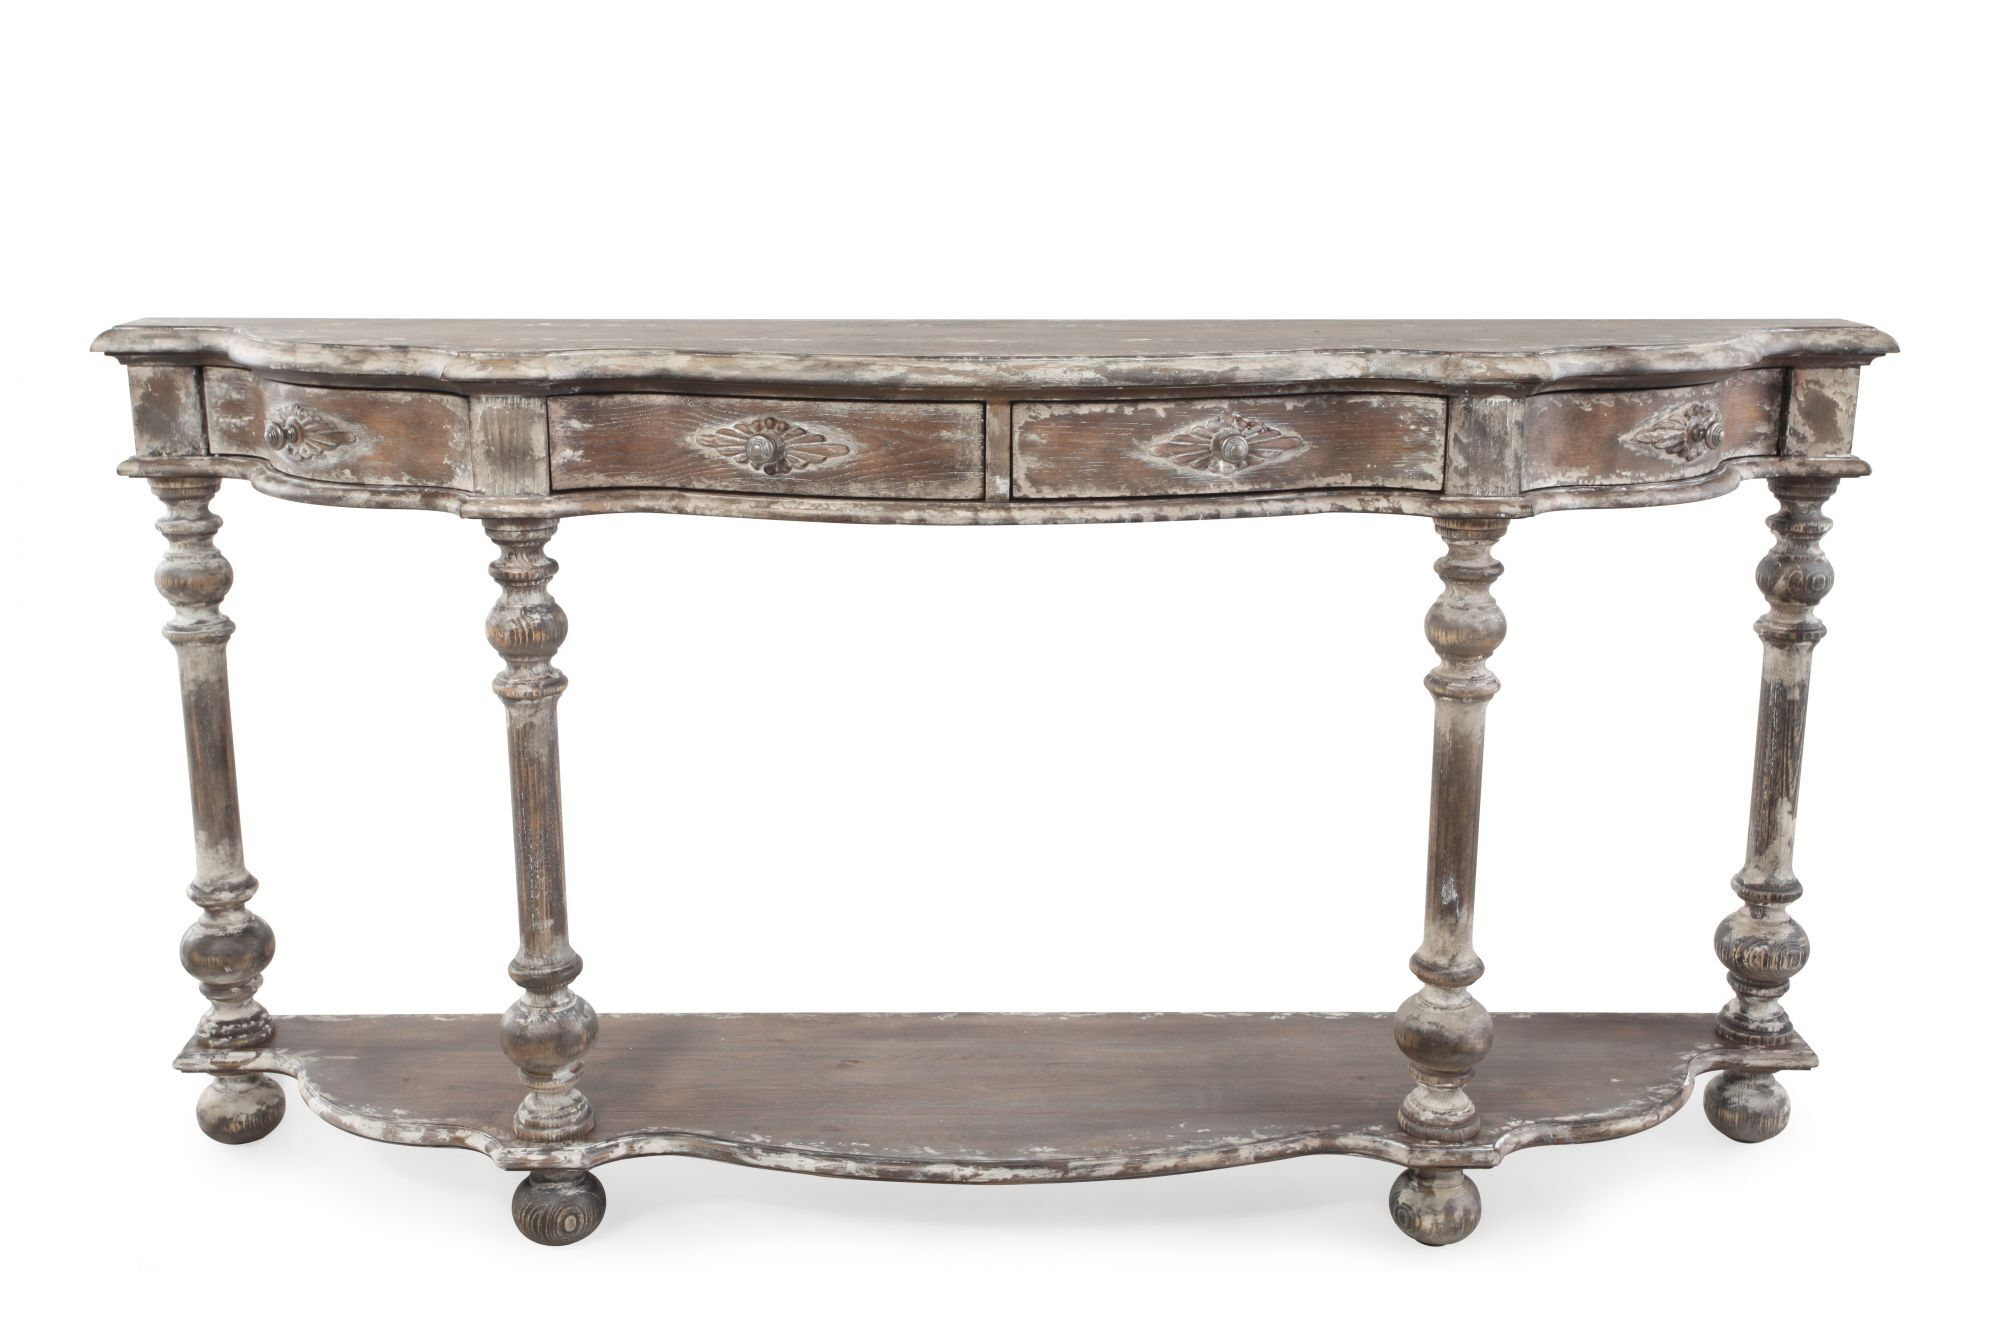 Images Demilune Shaped Casual Hall Console Table In Light White Demilune  Shaped Casual Hall Console Table In Light White